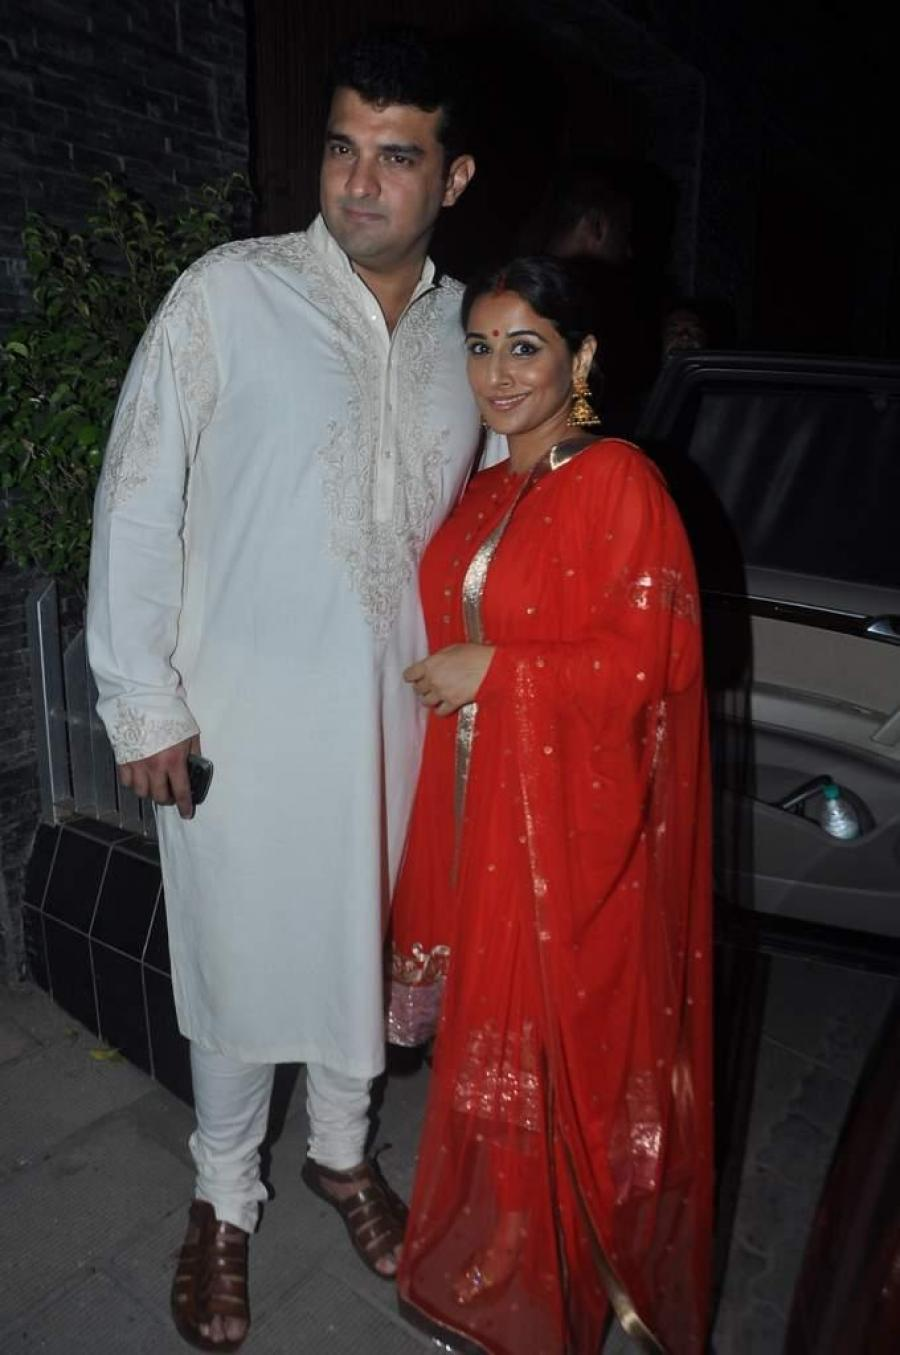 Vidya Balan Husband Photos At Diwali Party In Red Dress